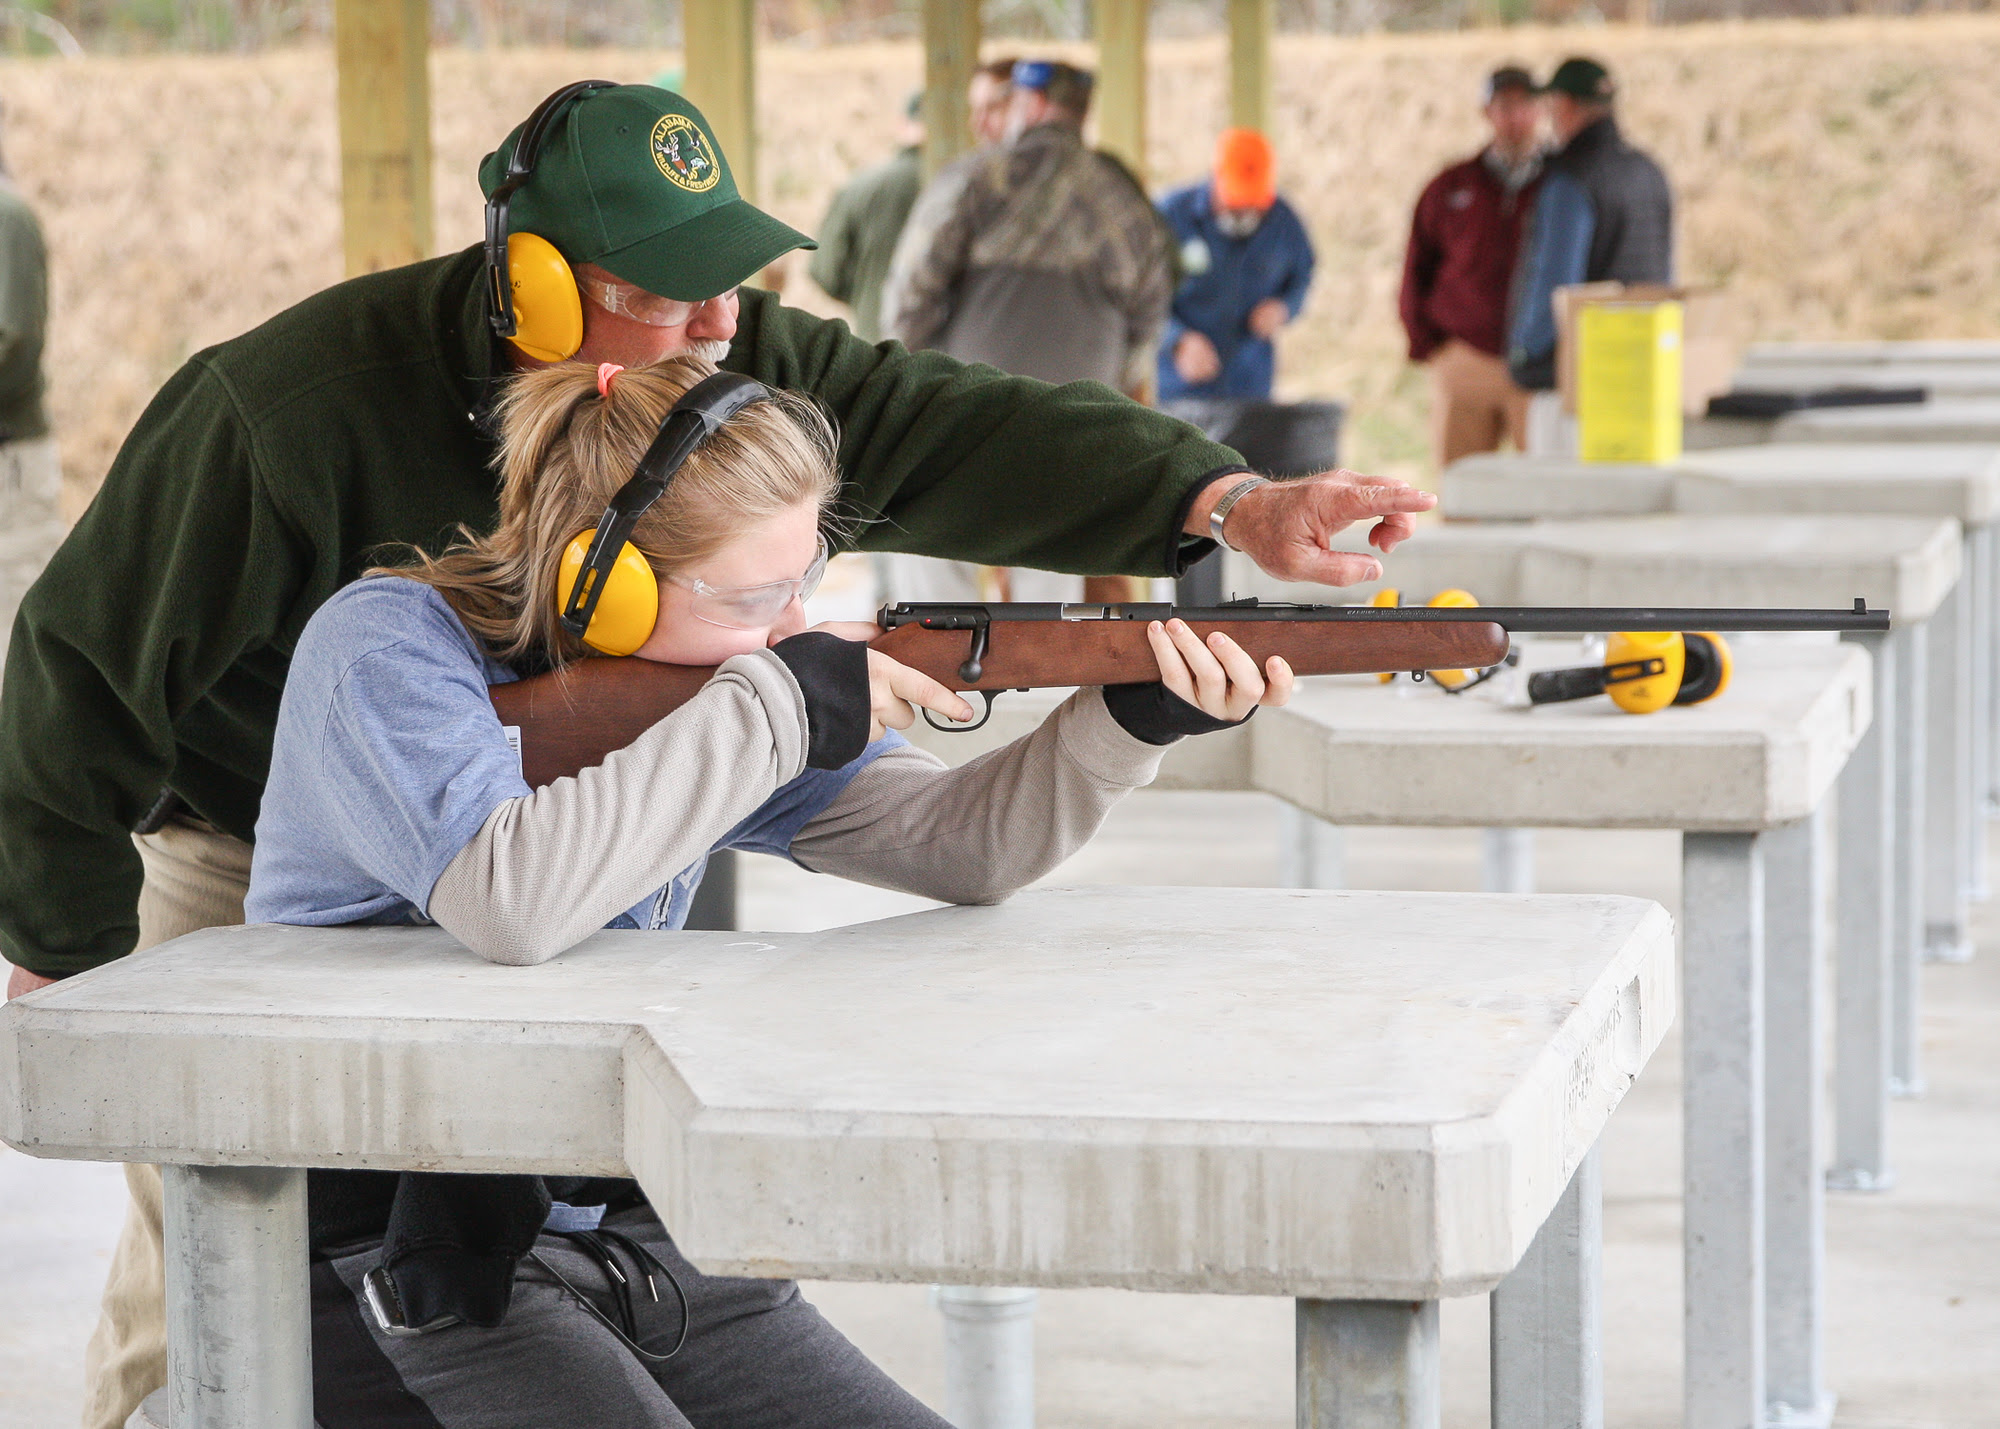 During Free Range Days, equipment, ammunition, and hearing and eye protection will be provided free of charge at the five participating ranges.